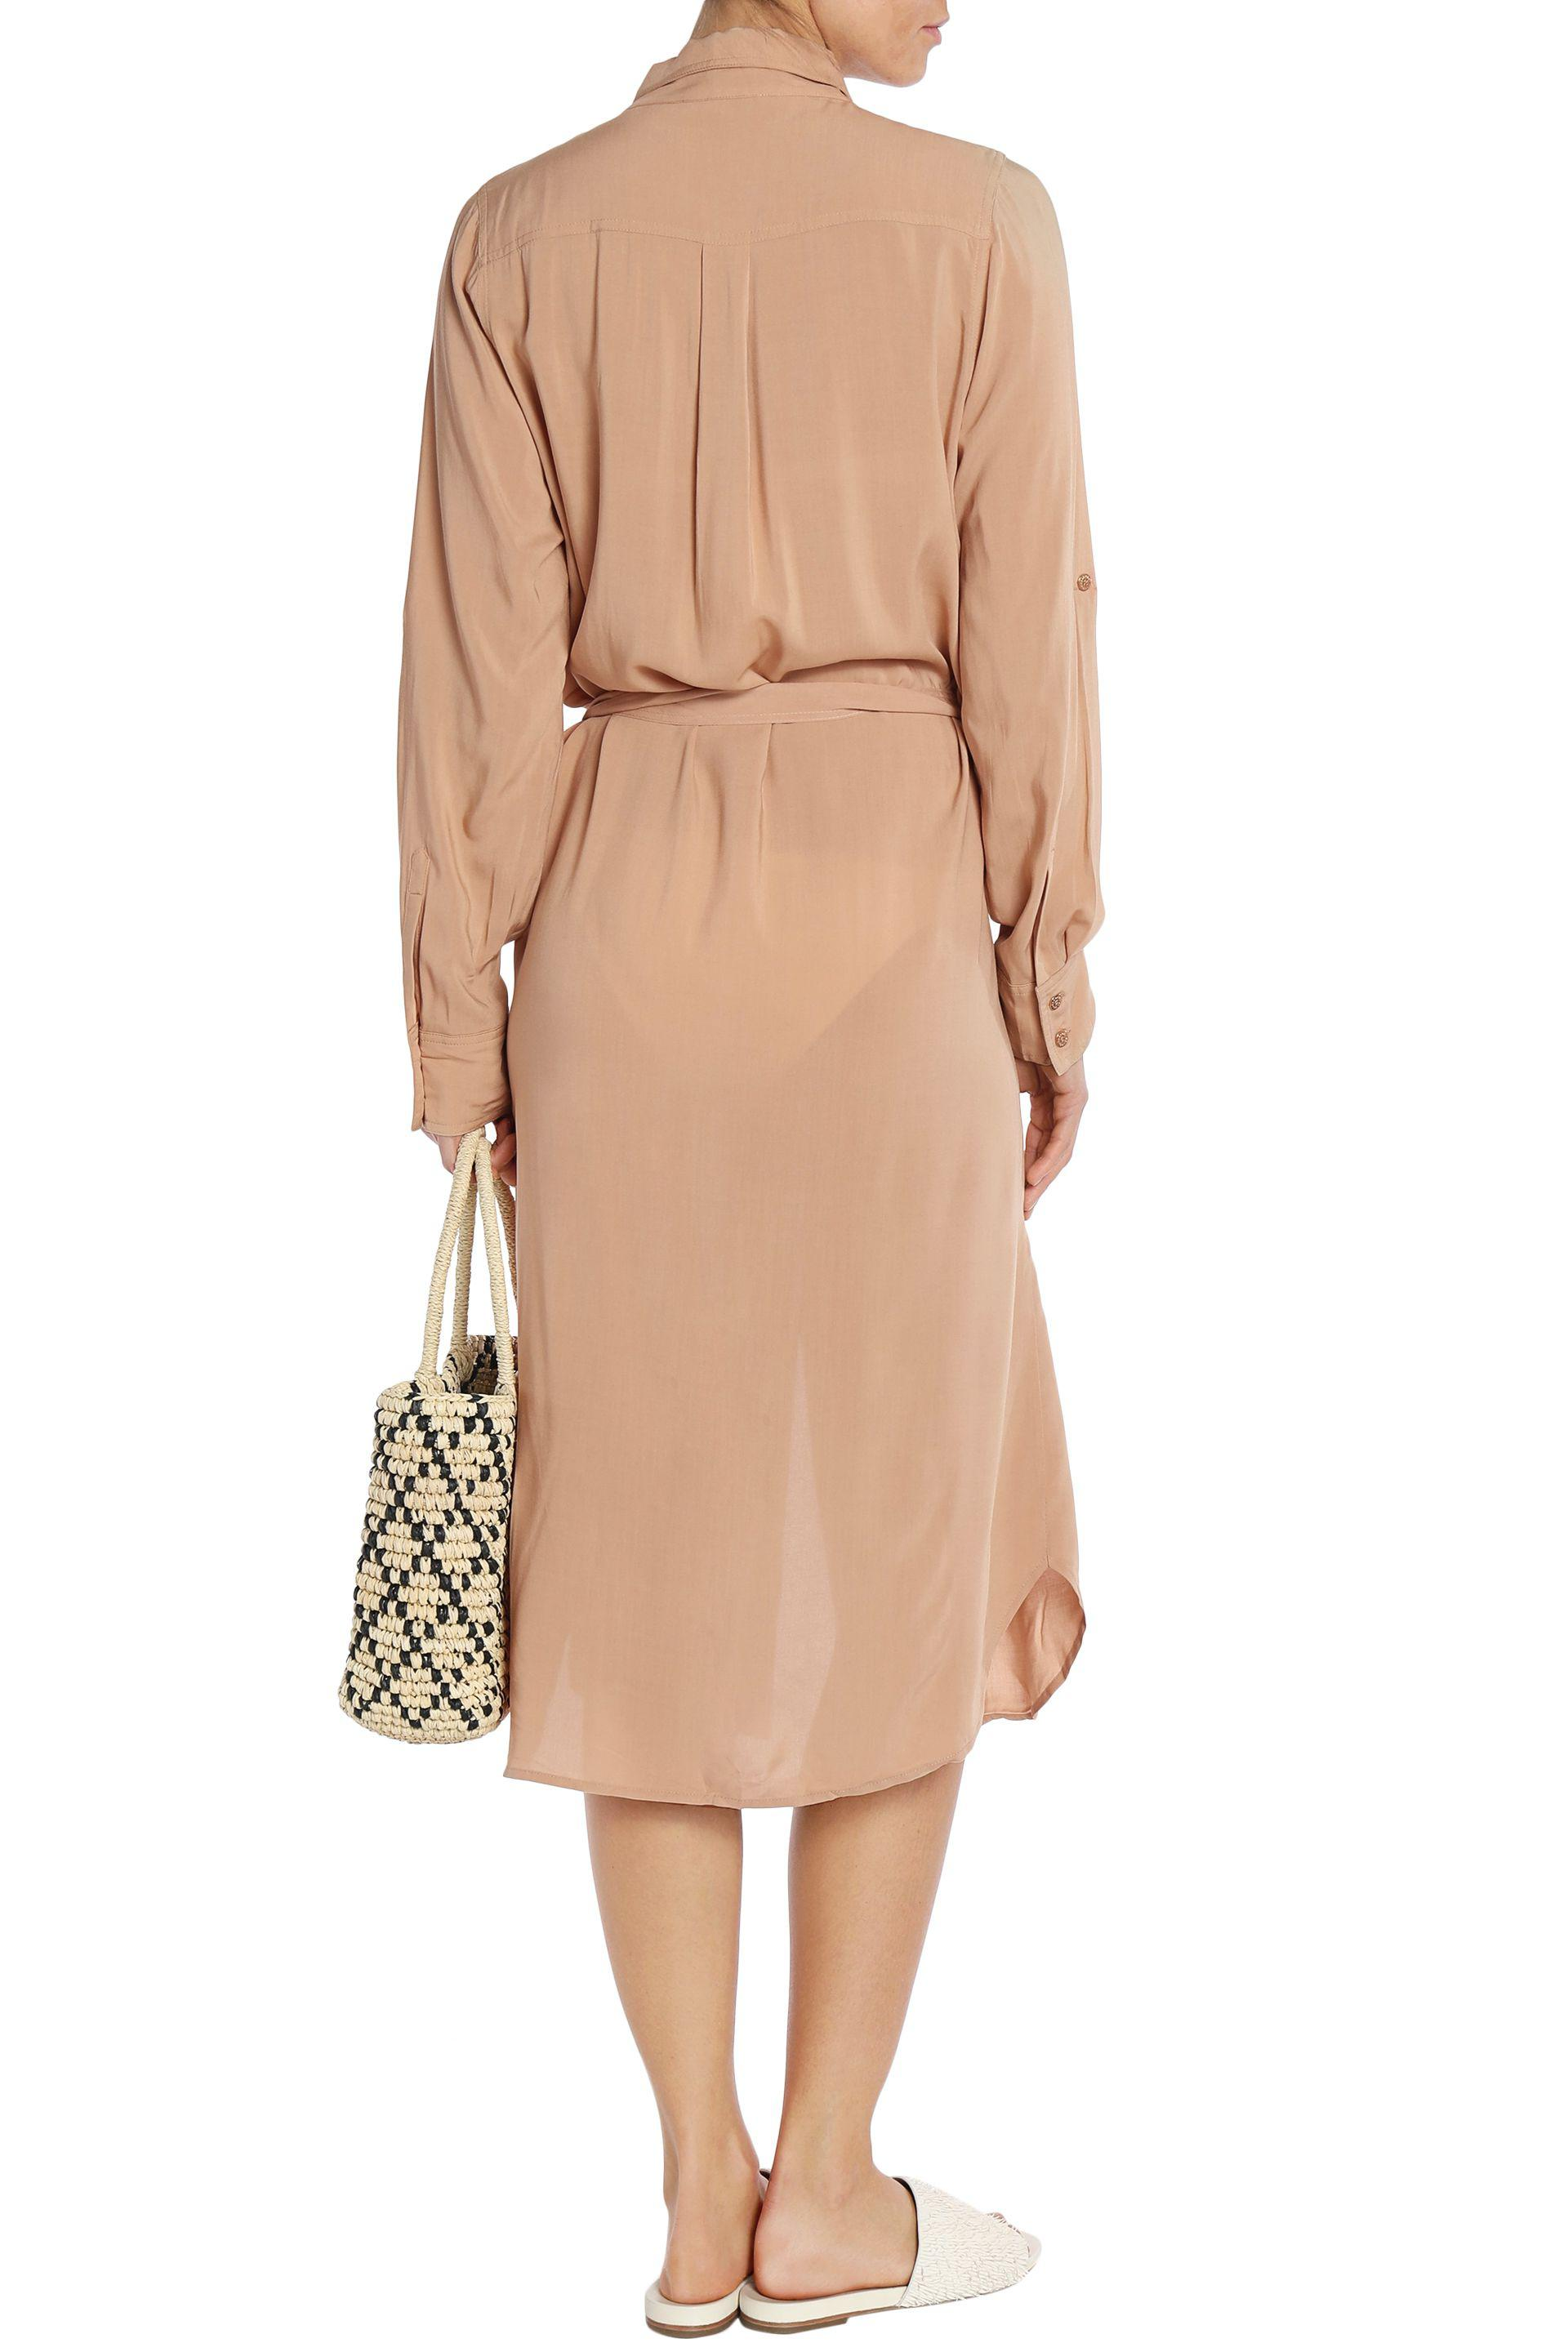 Melissa Odabash Woman Maryanne Belted Brushed-jersey Midi Shirt Dress Beige Size L Melissa Odabash Looking For Cheap Price Clearance Cheap Pre Order Factory Outlet Cheap Online lYzuVa1